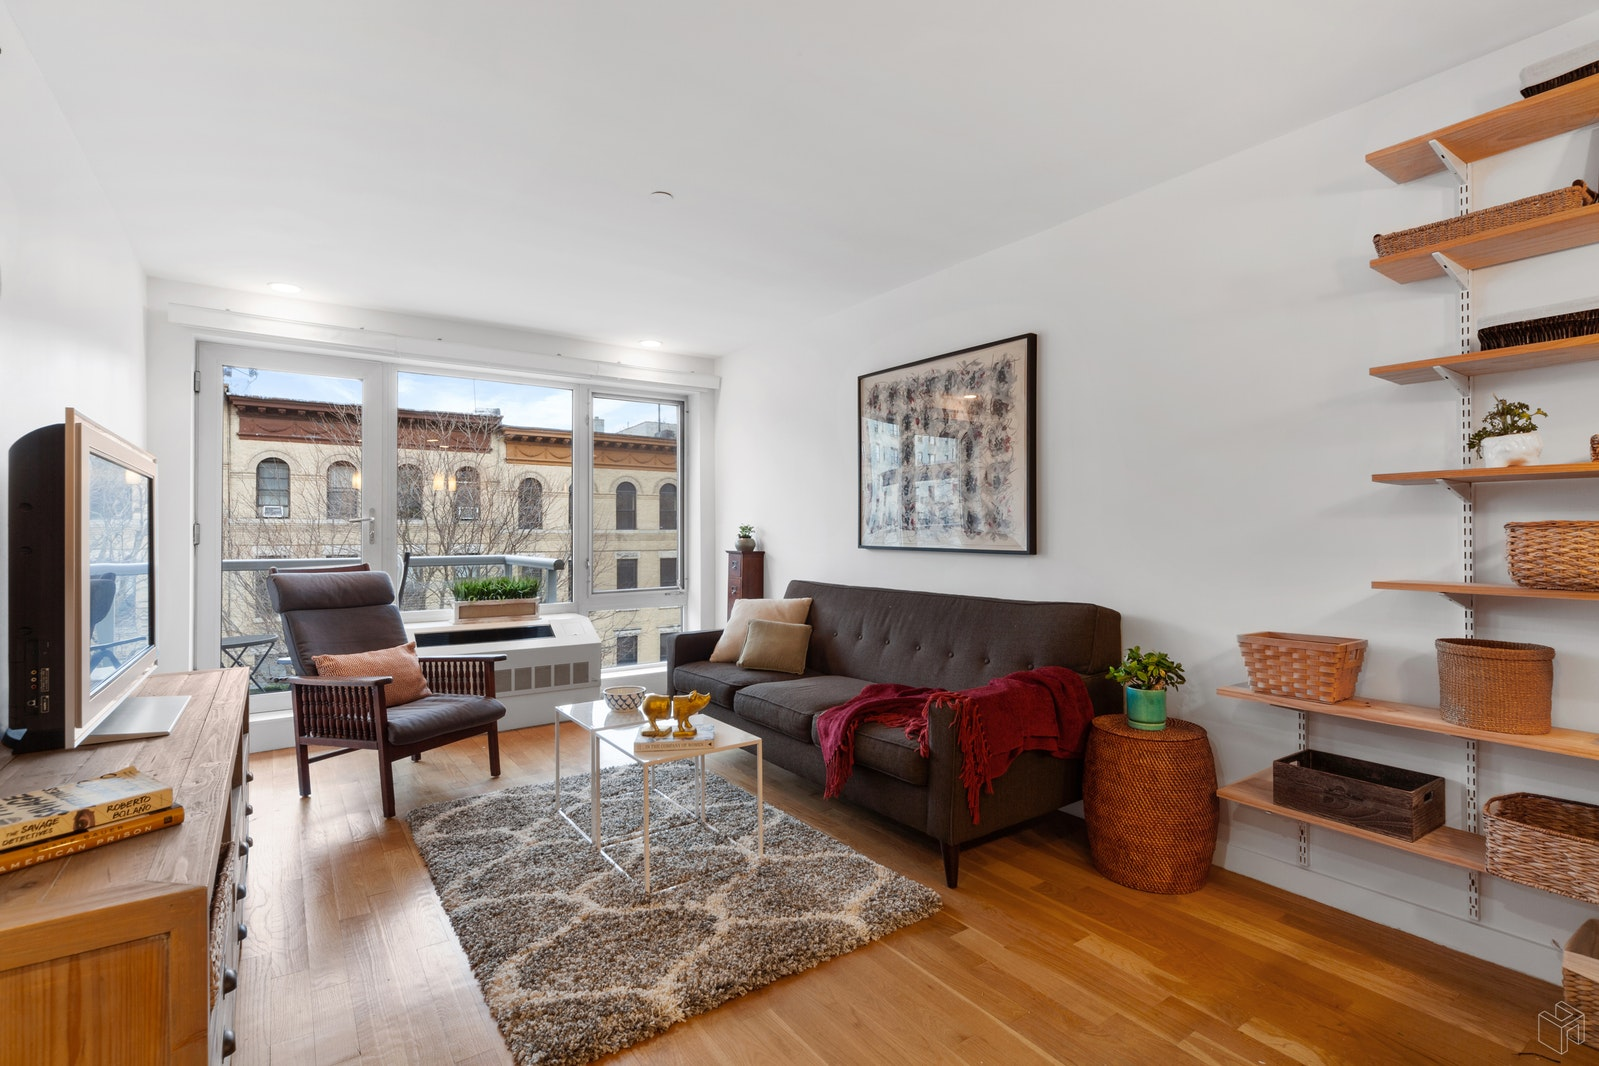 823 Classon Avenue 4c, Crown Heights, Brooklyn, NY, 11238, $765,000, Sold Property, Halstead Real Estate, Photo 1